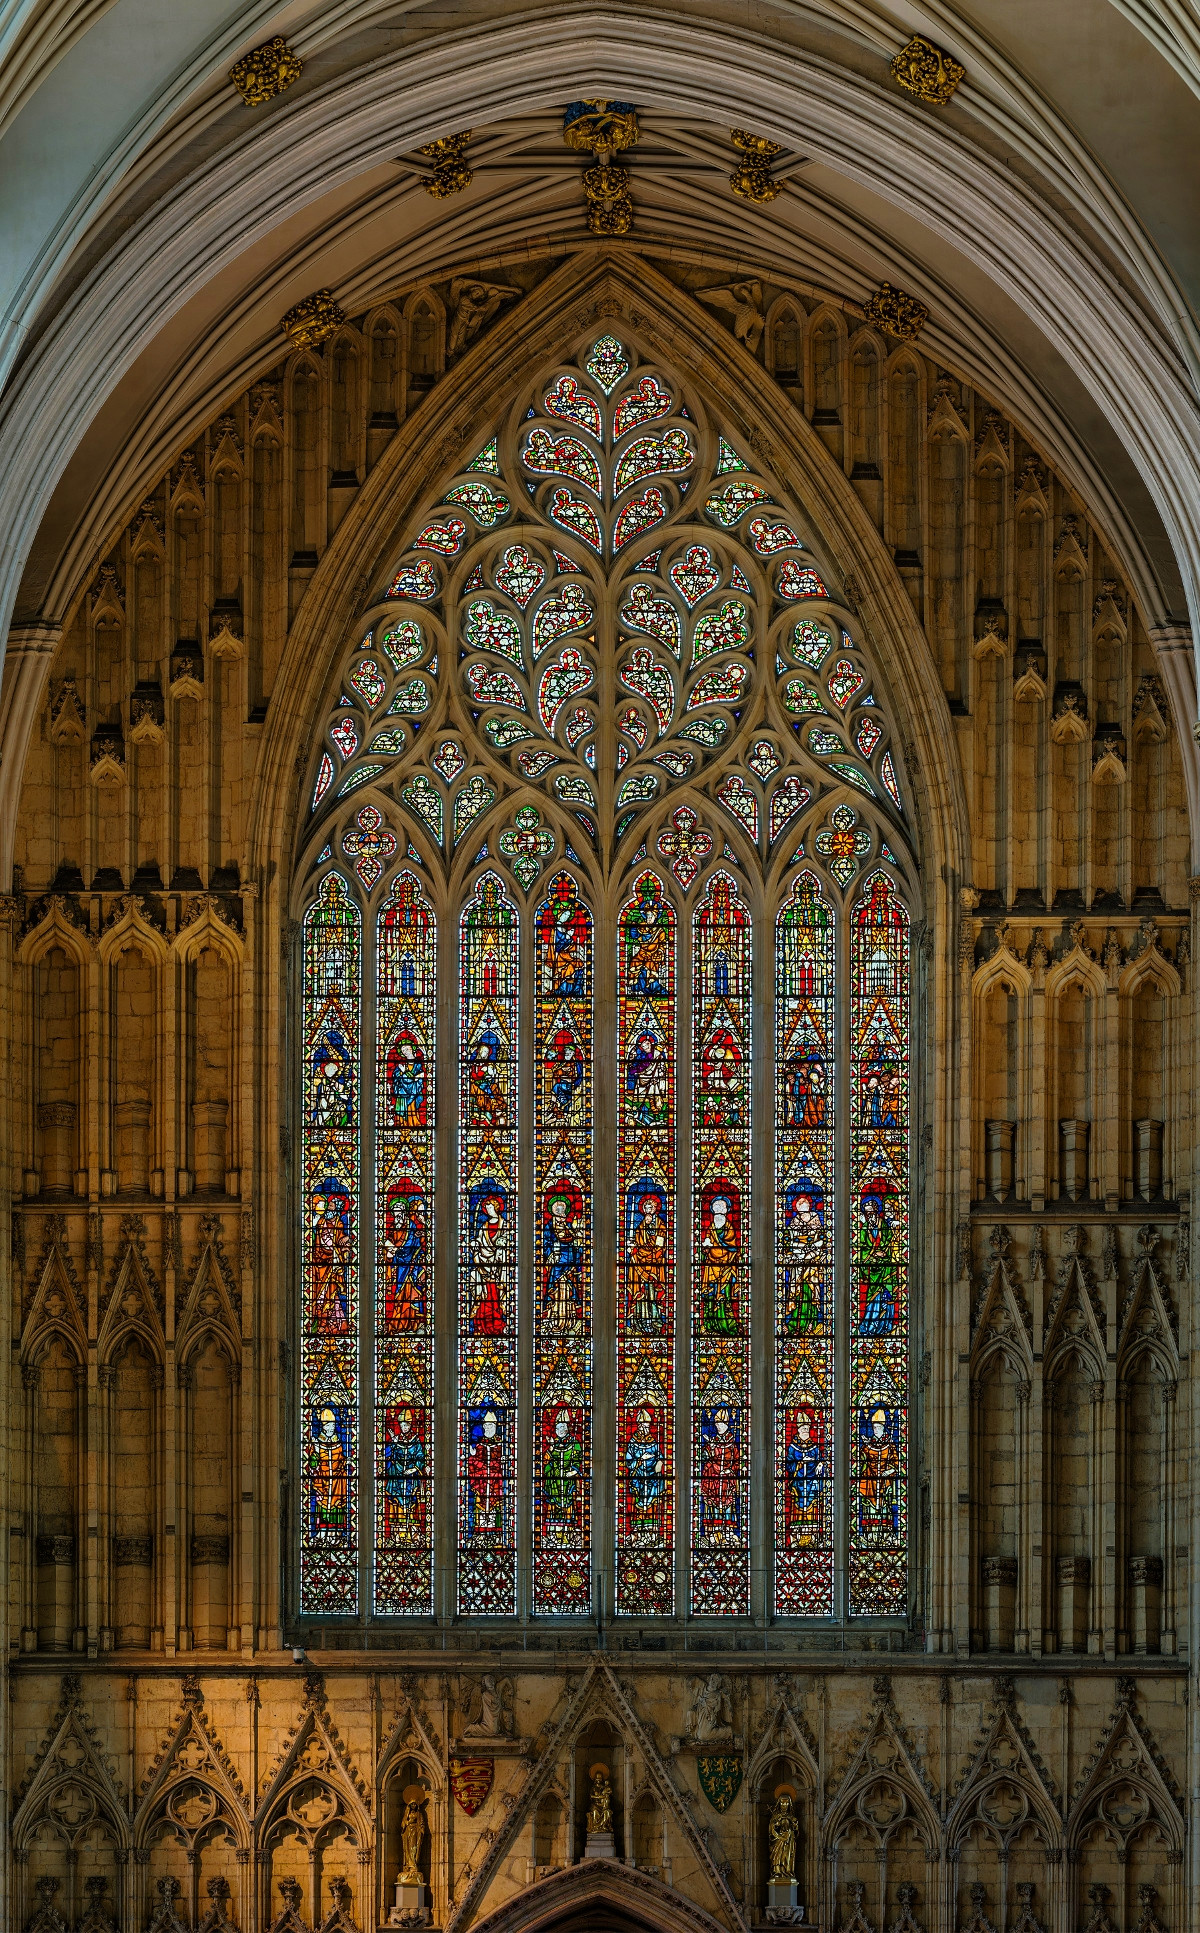 The west window. Credit David Iliff